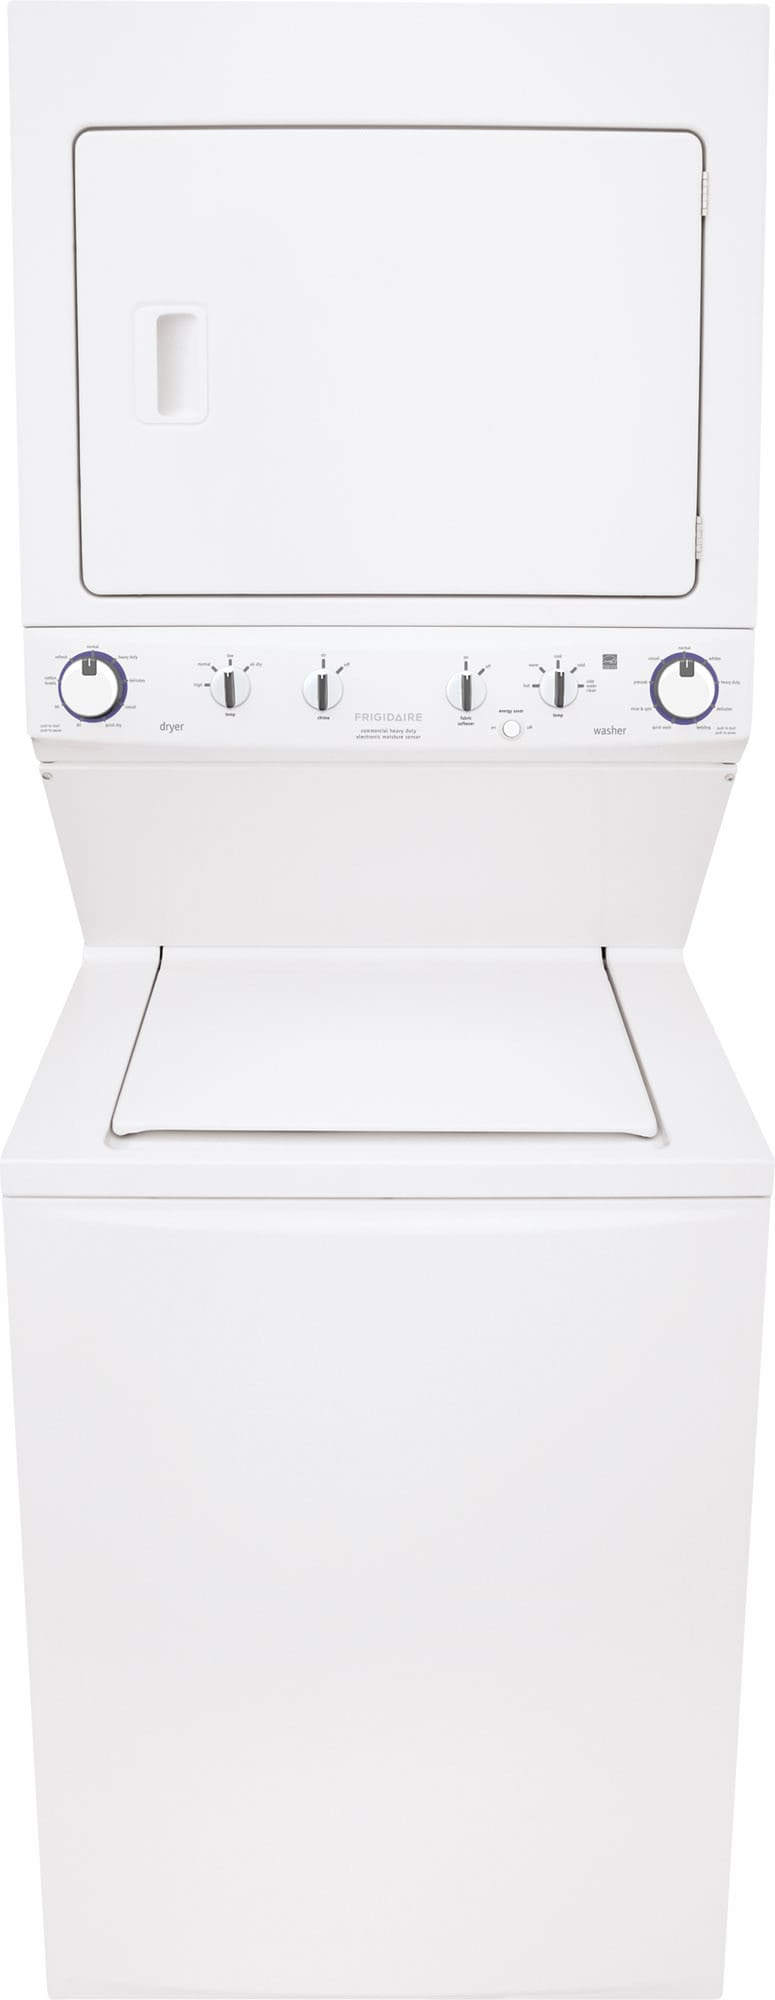 frigidaire ffle4033qw 27 inch electric laundry center with 3 8 cu  ft  washer  5 5 cu  ft  dryer